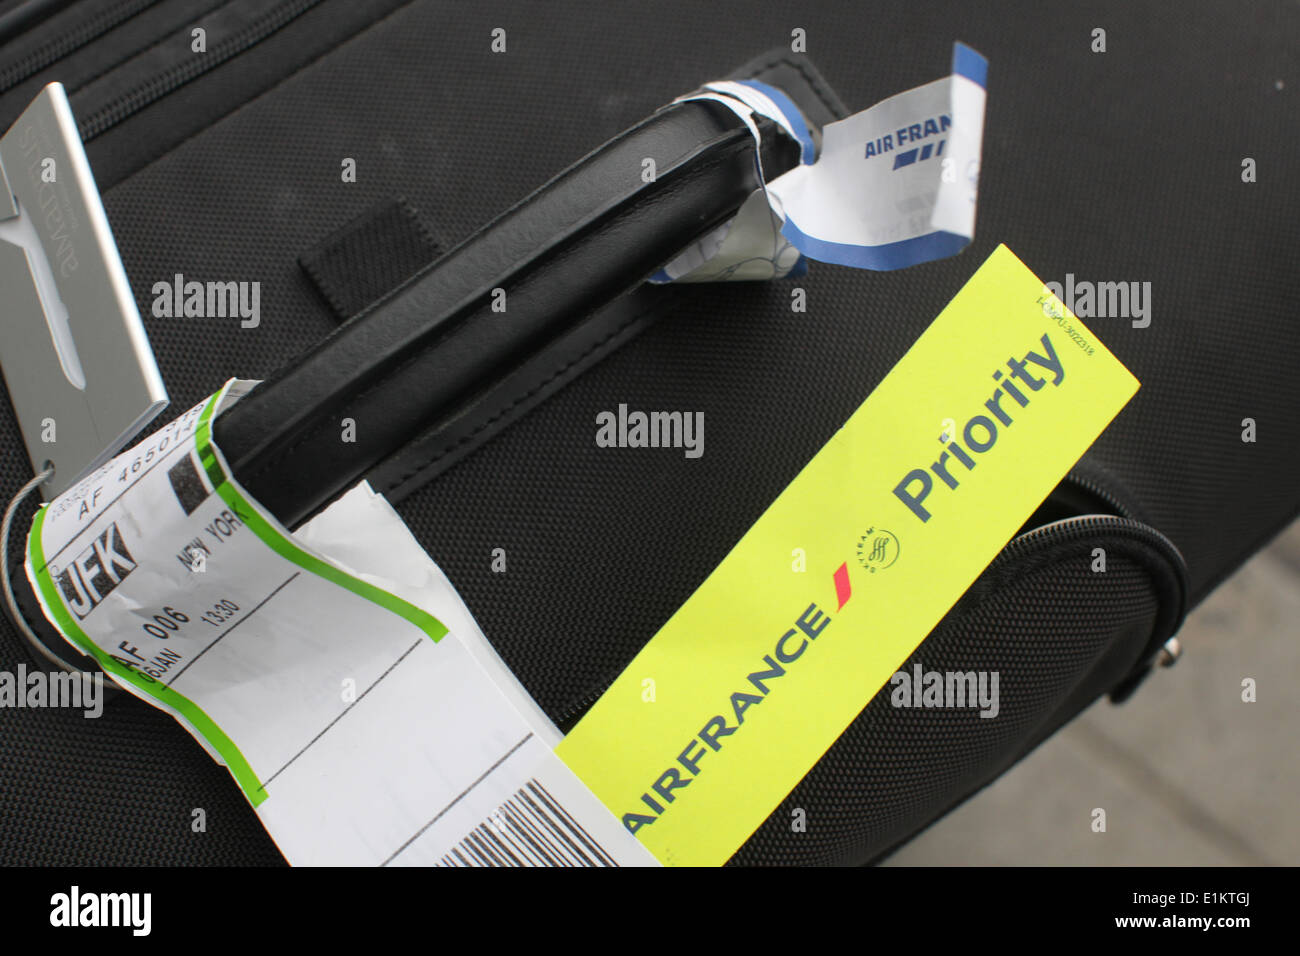 Luggage tags - Stock Image